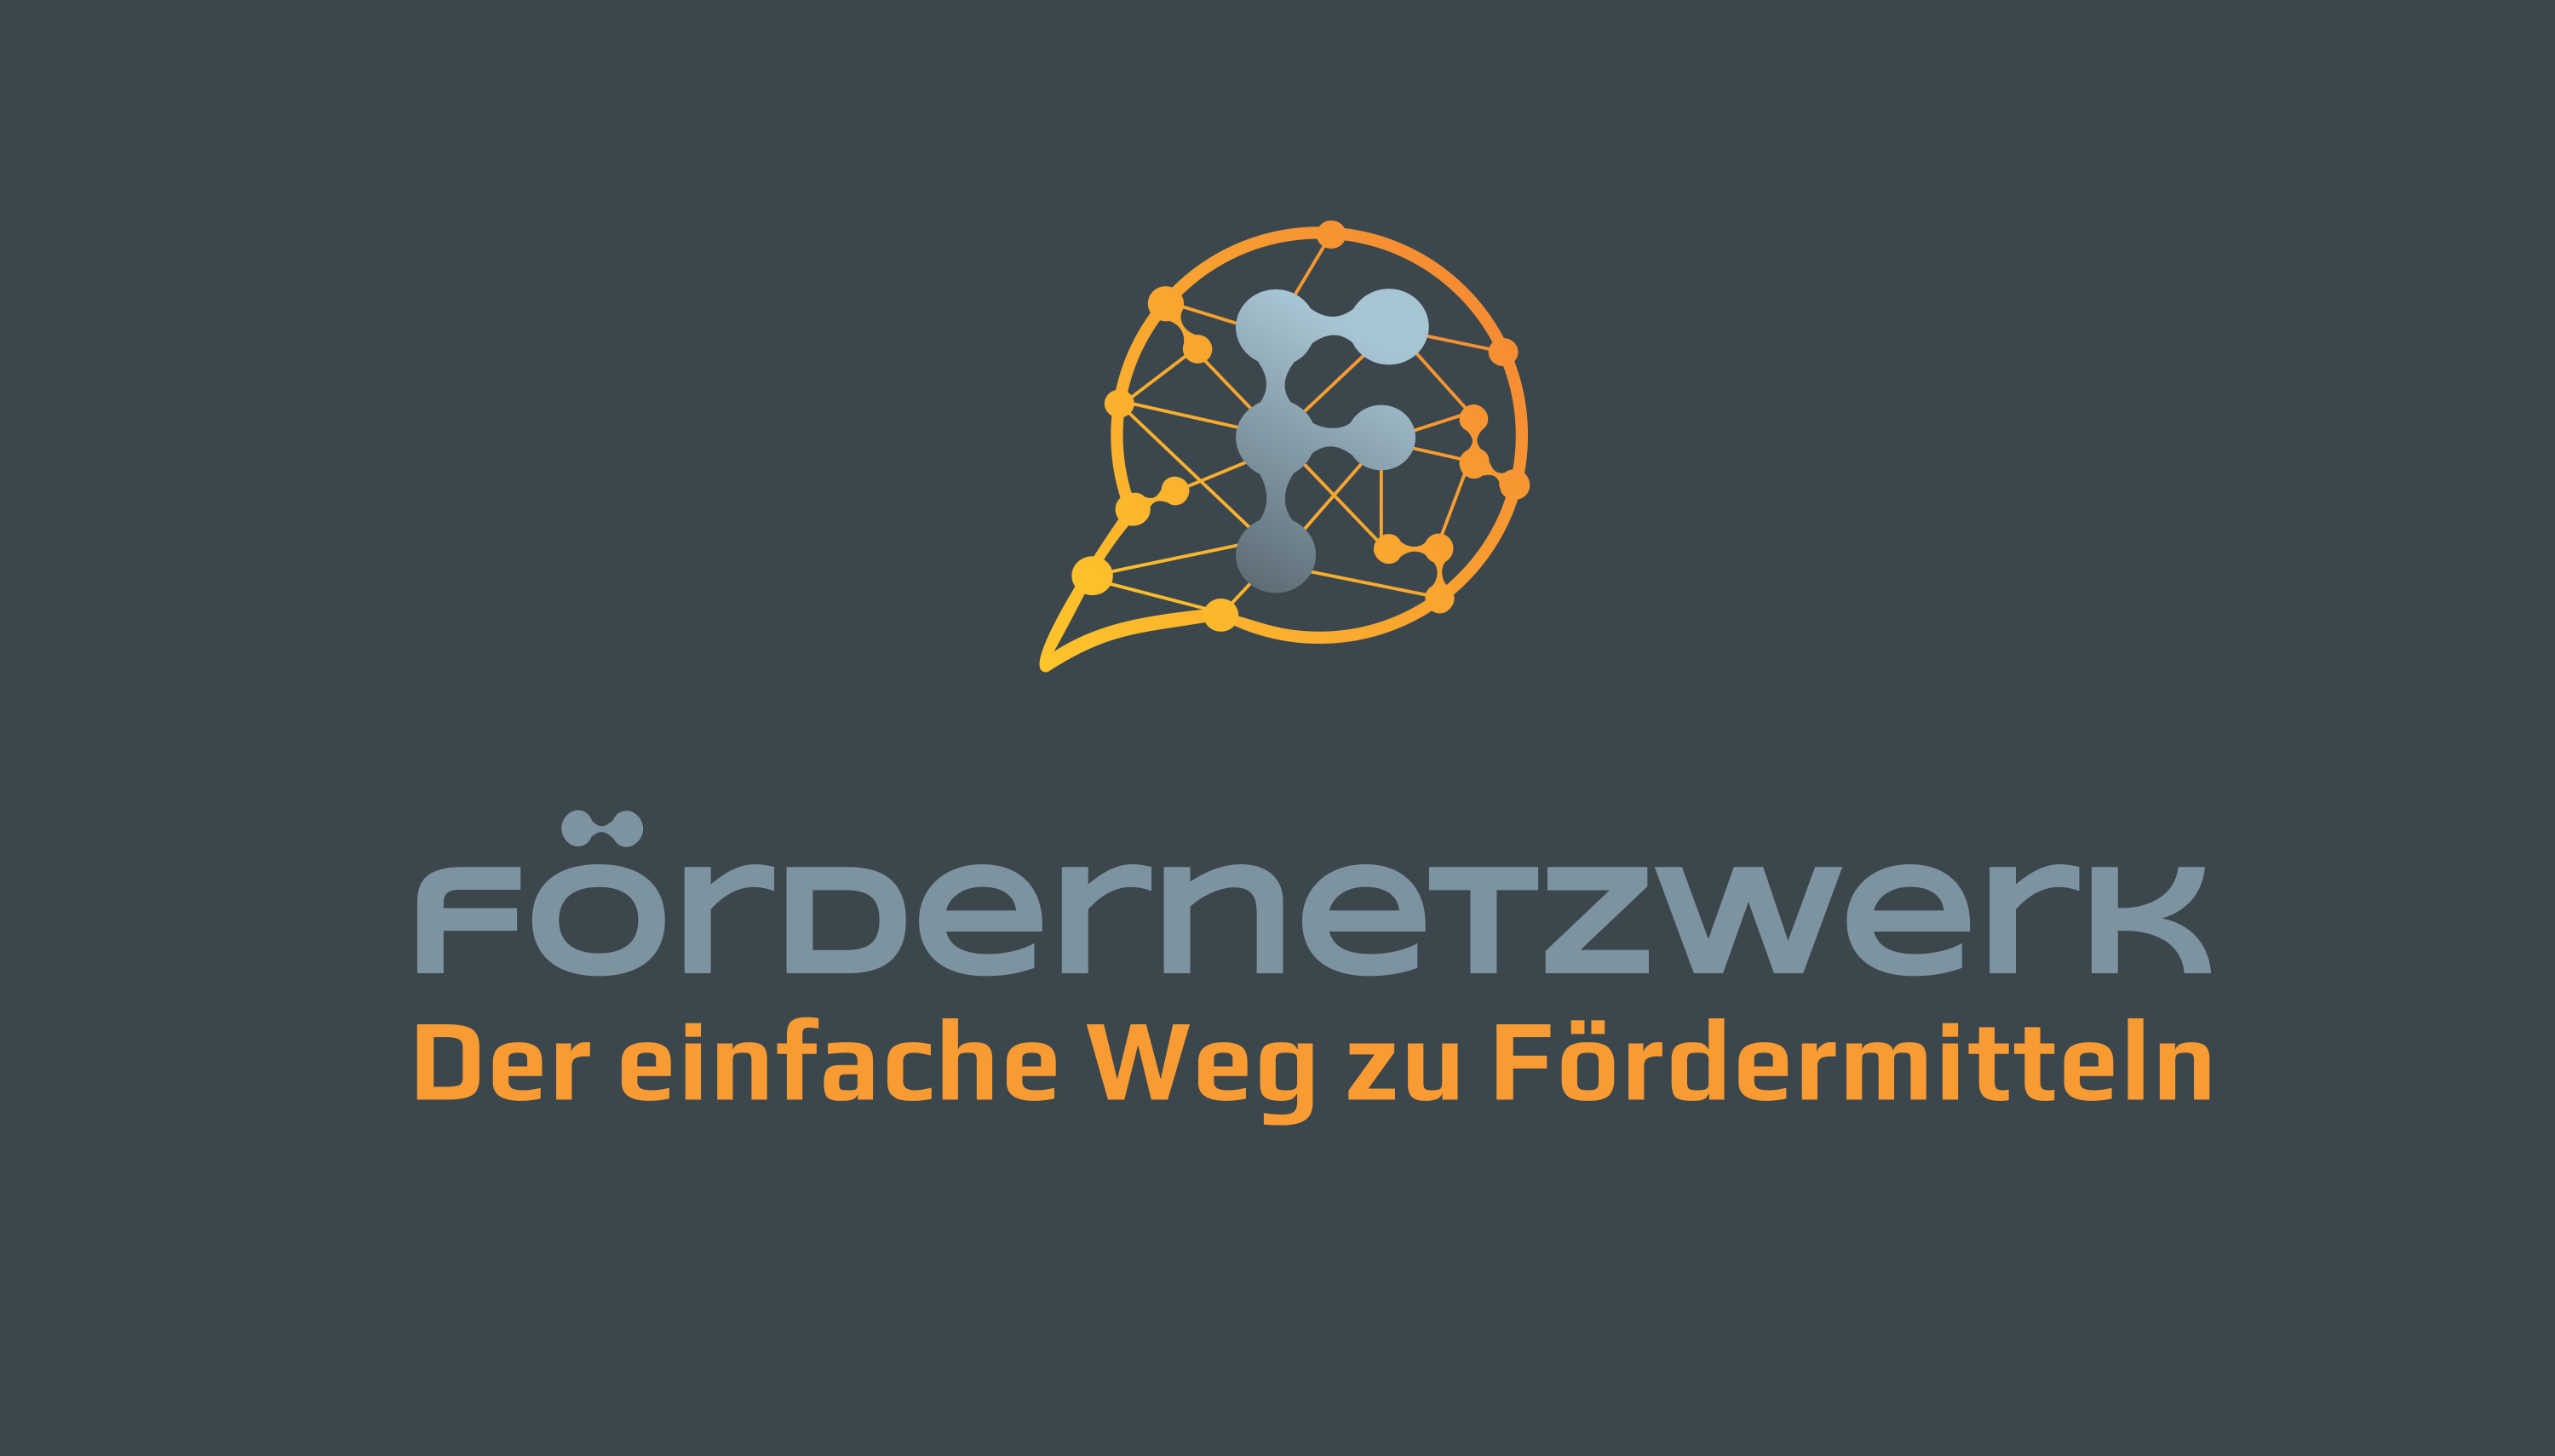 We need an eyecatching logo for our startup - B2B, platform between companies and consulting firms